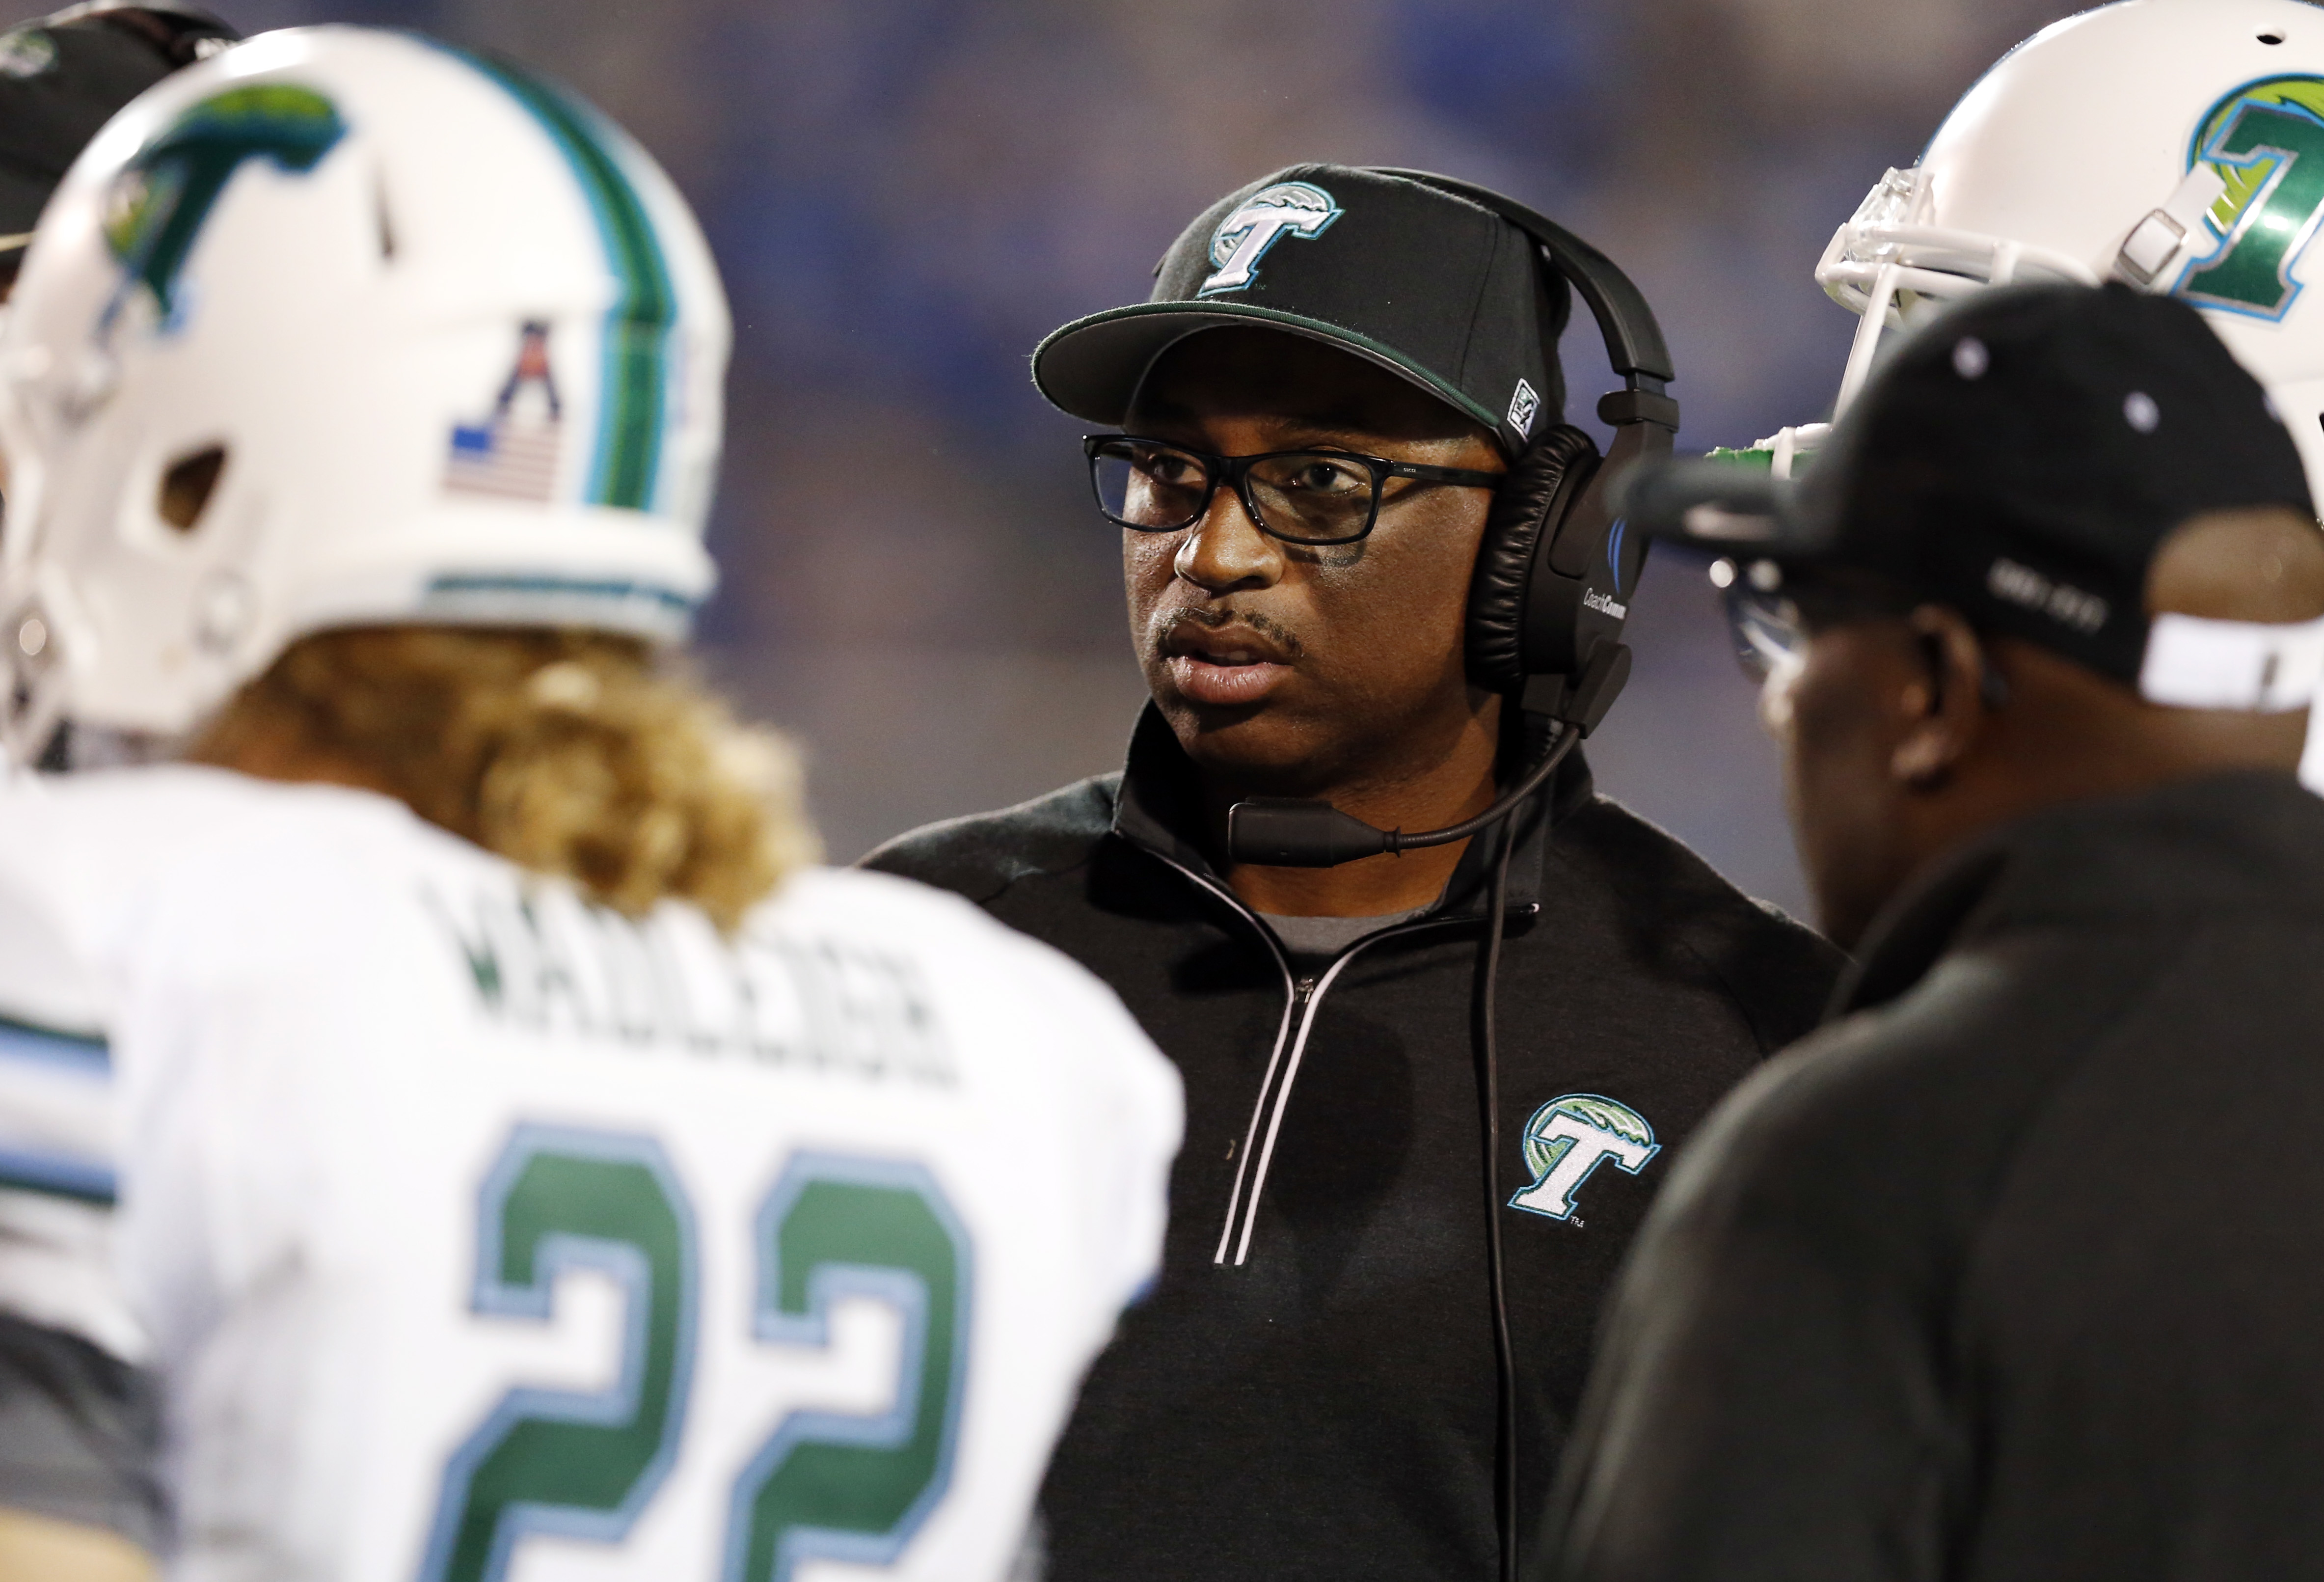 Tulane head coach Curtis Johnson watches after his players during a time out in the first half of an NCAA college football game against Memphis in Memphis, Tenn., Saturday, Oct. 31, 2015. (AP Photo/Rogelio V. Solis)